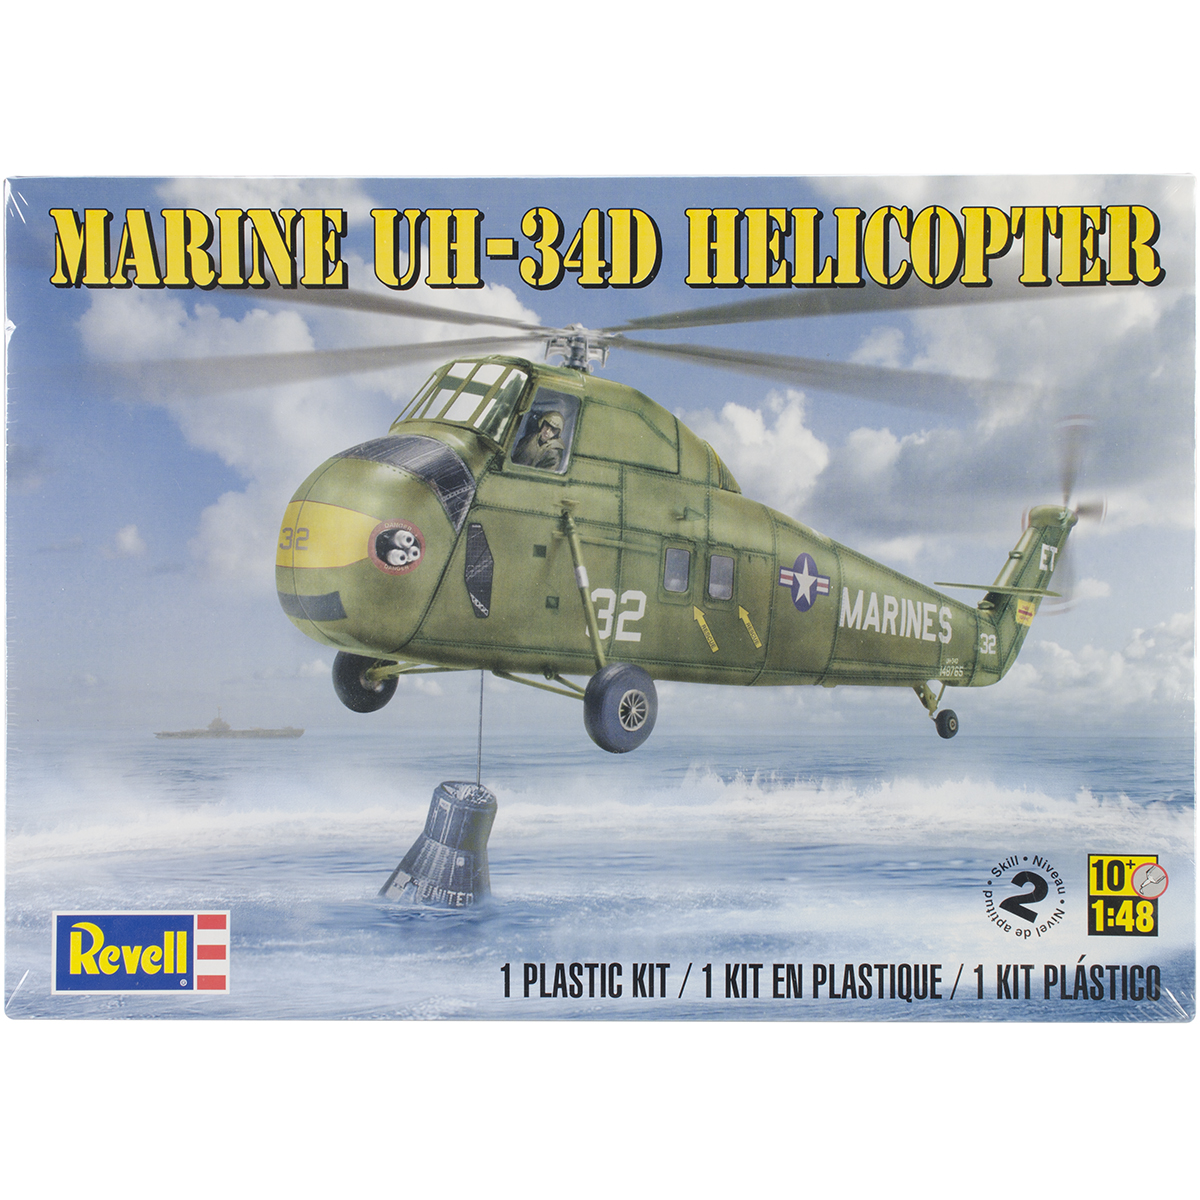 Plastic Model Kit-Marine UH-34 D Helicopter 1:48